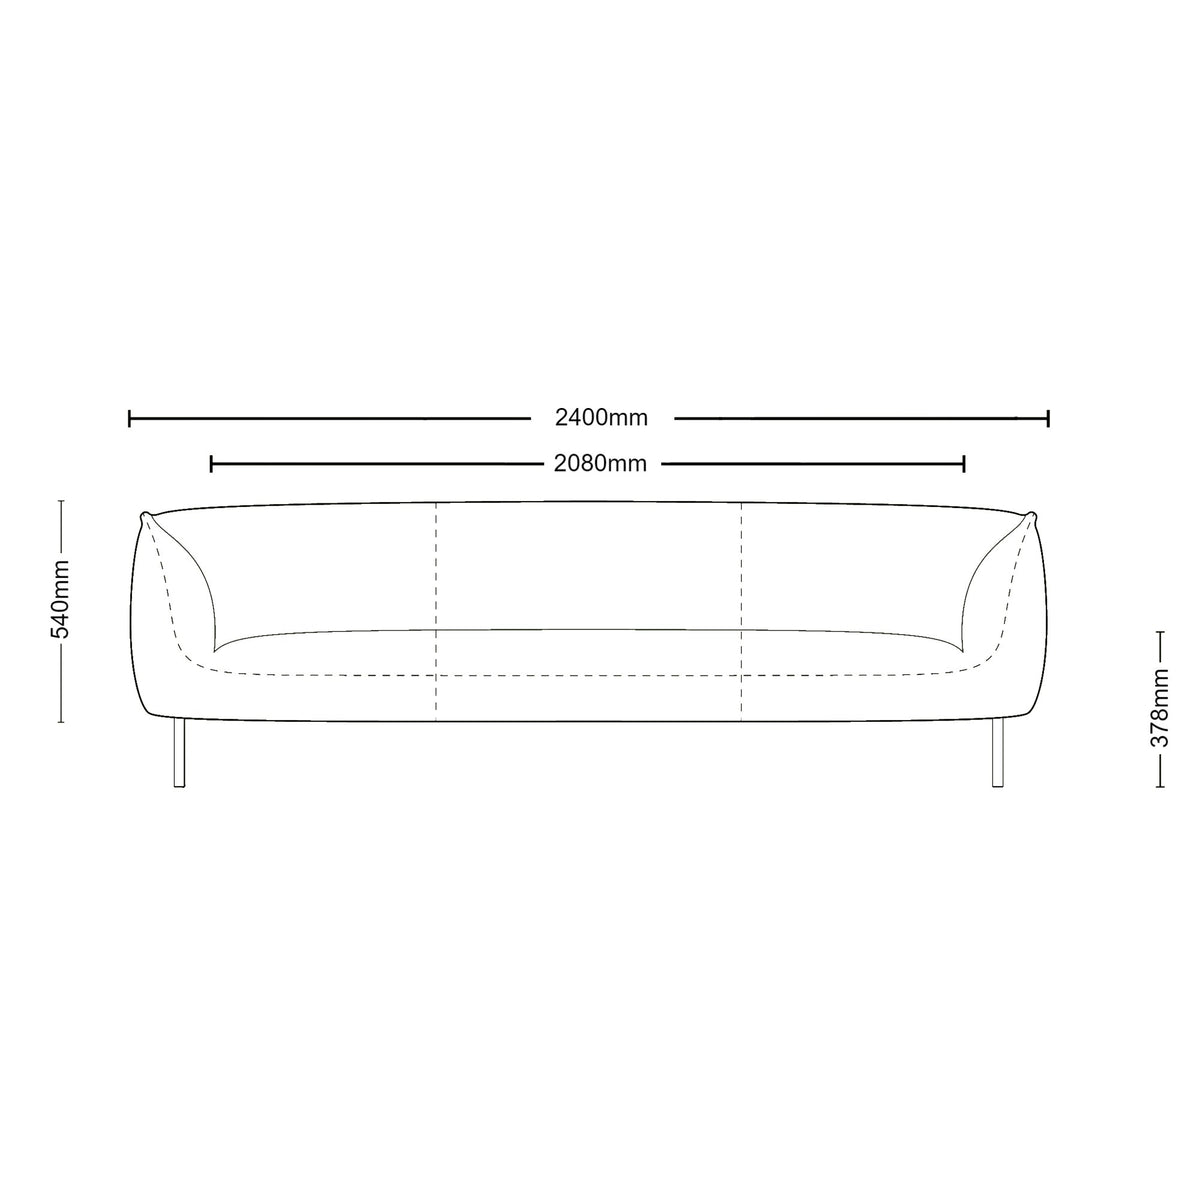 Dimensions for Edsbyn Gather 3 Seater Sofa